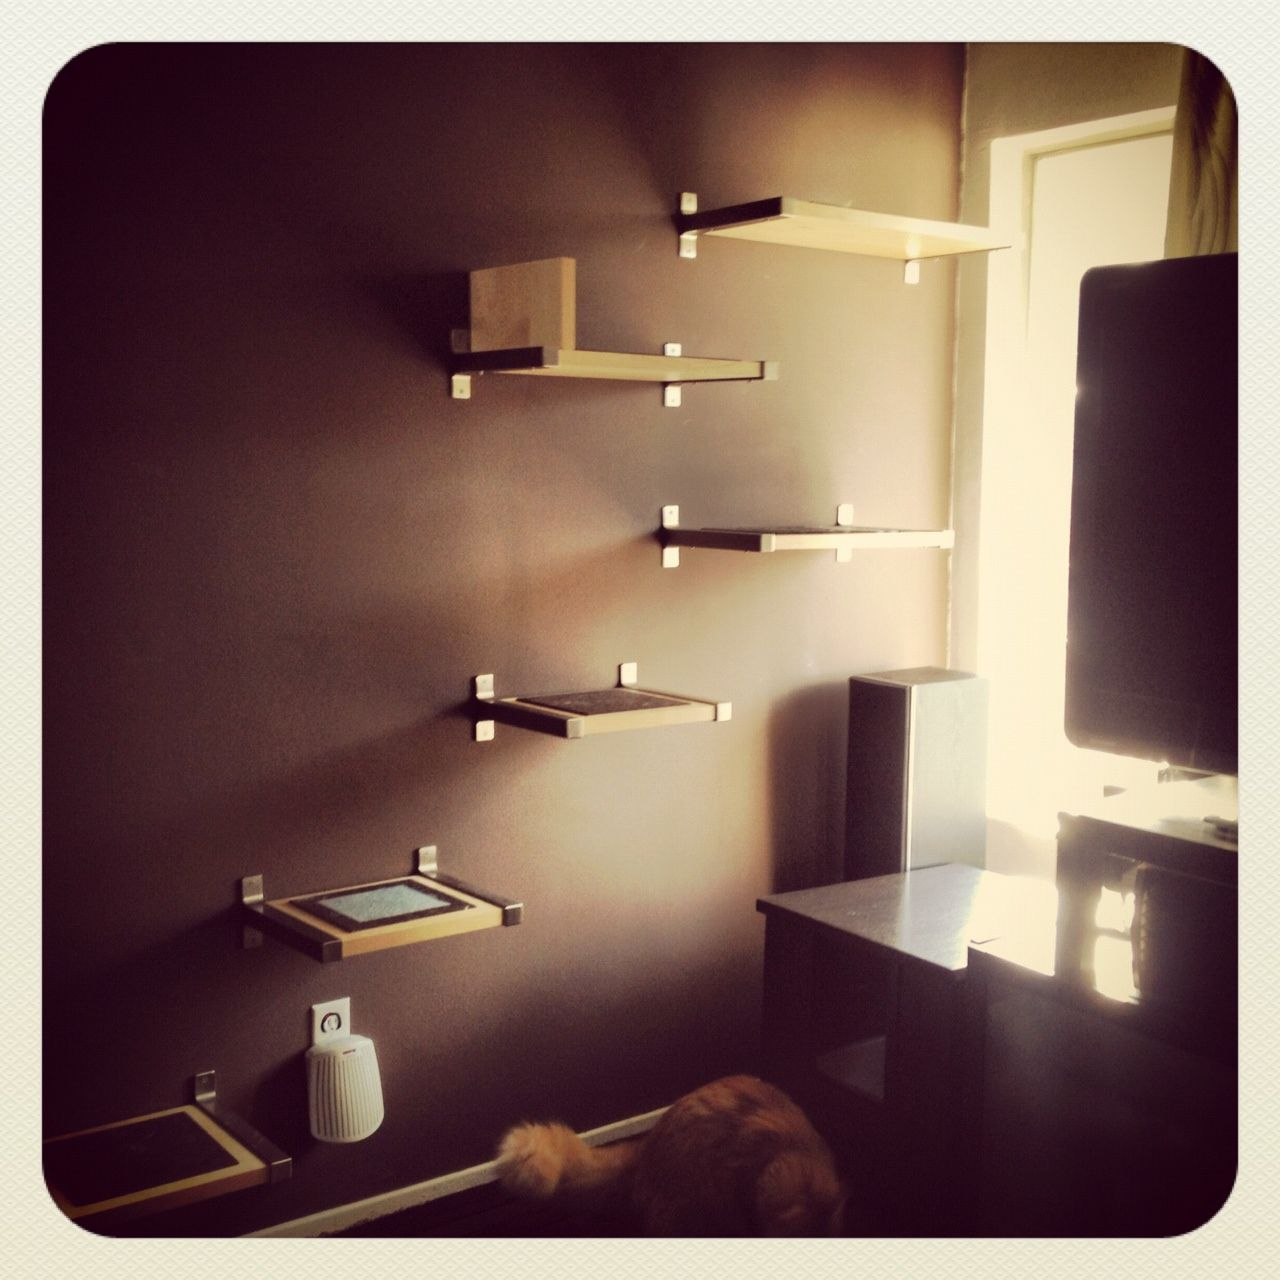 Diy cat shelves as we seem to be going both decorating